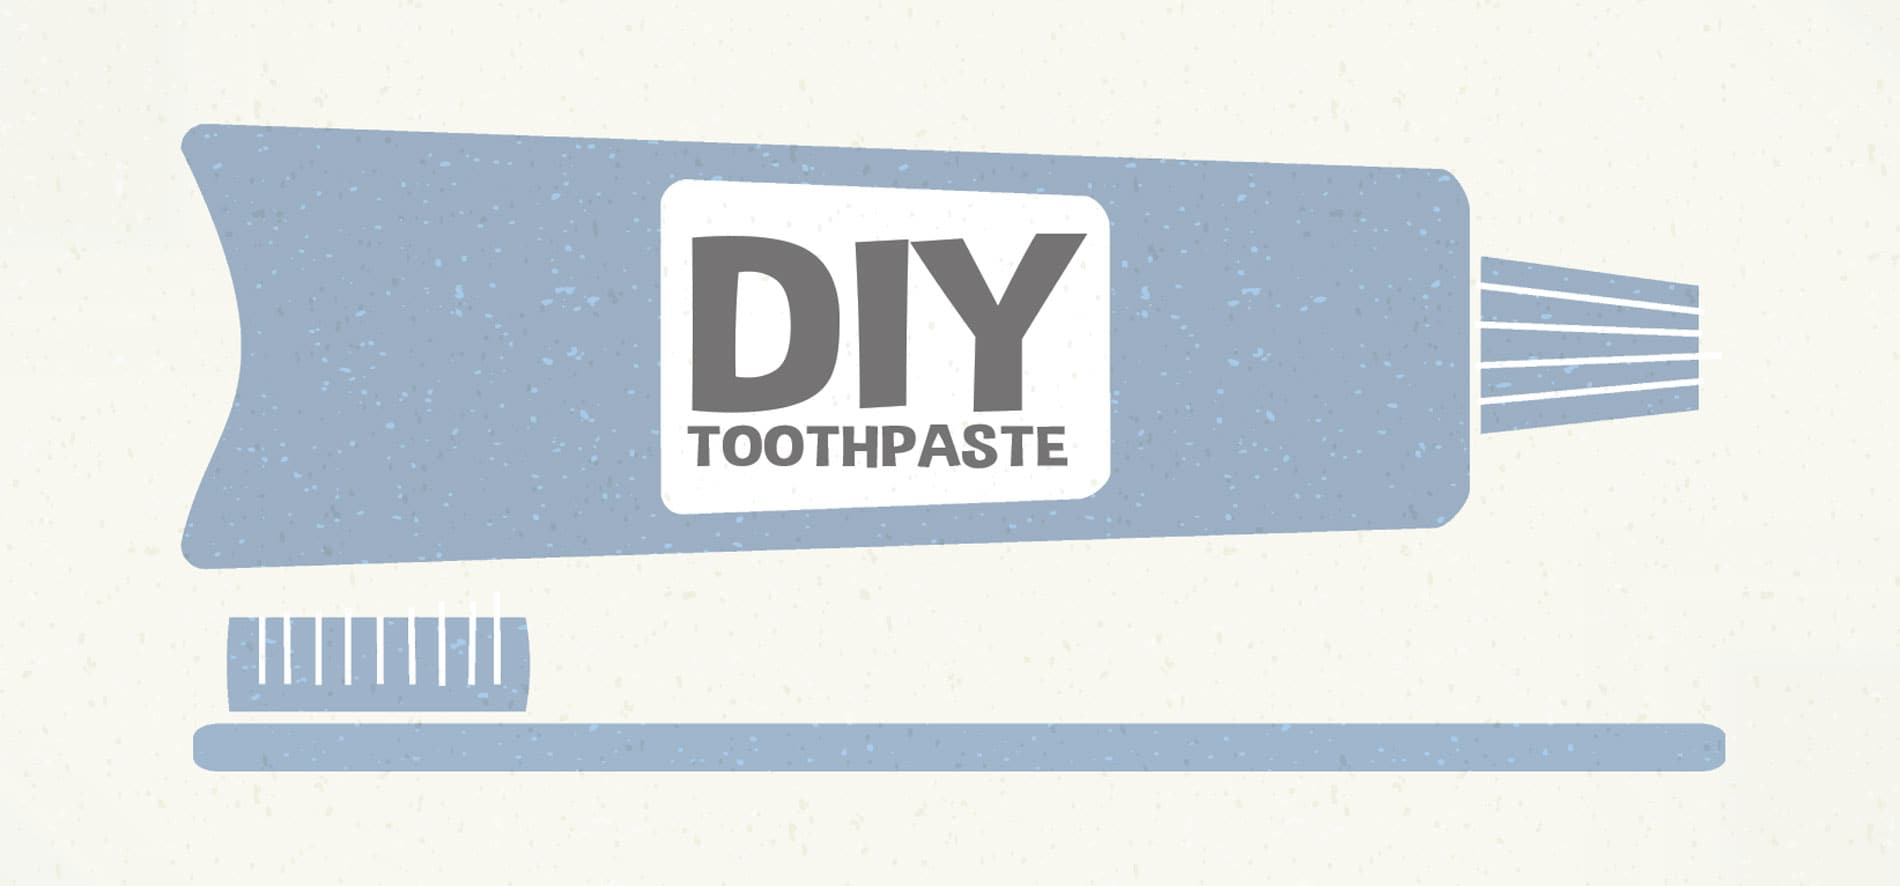 DIY Toothpaste image